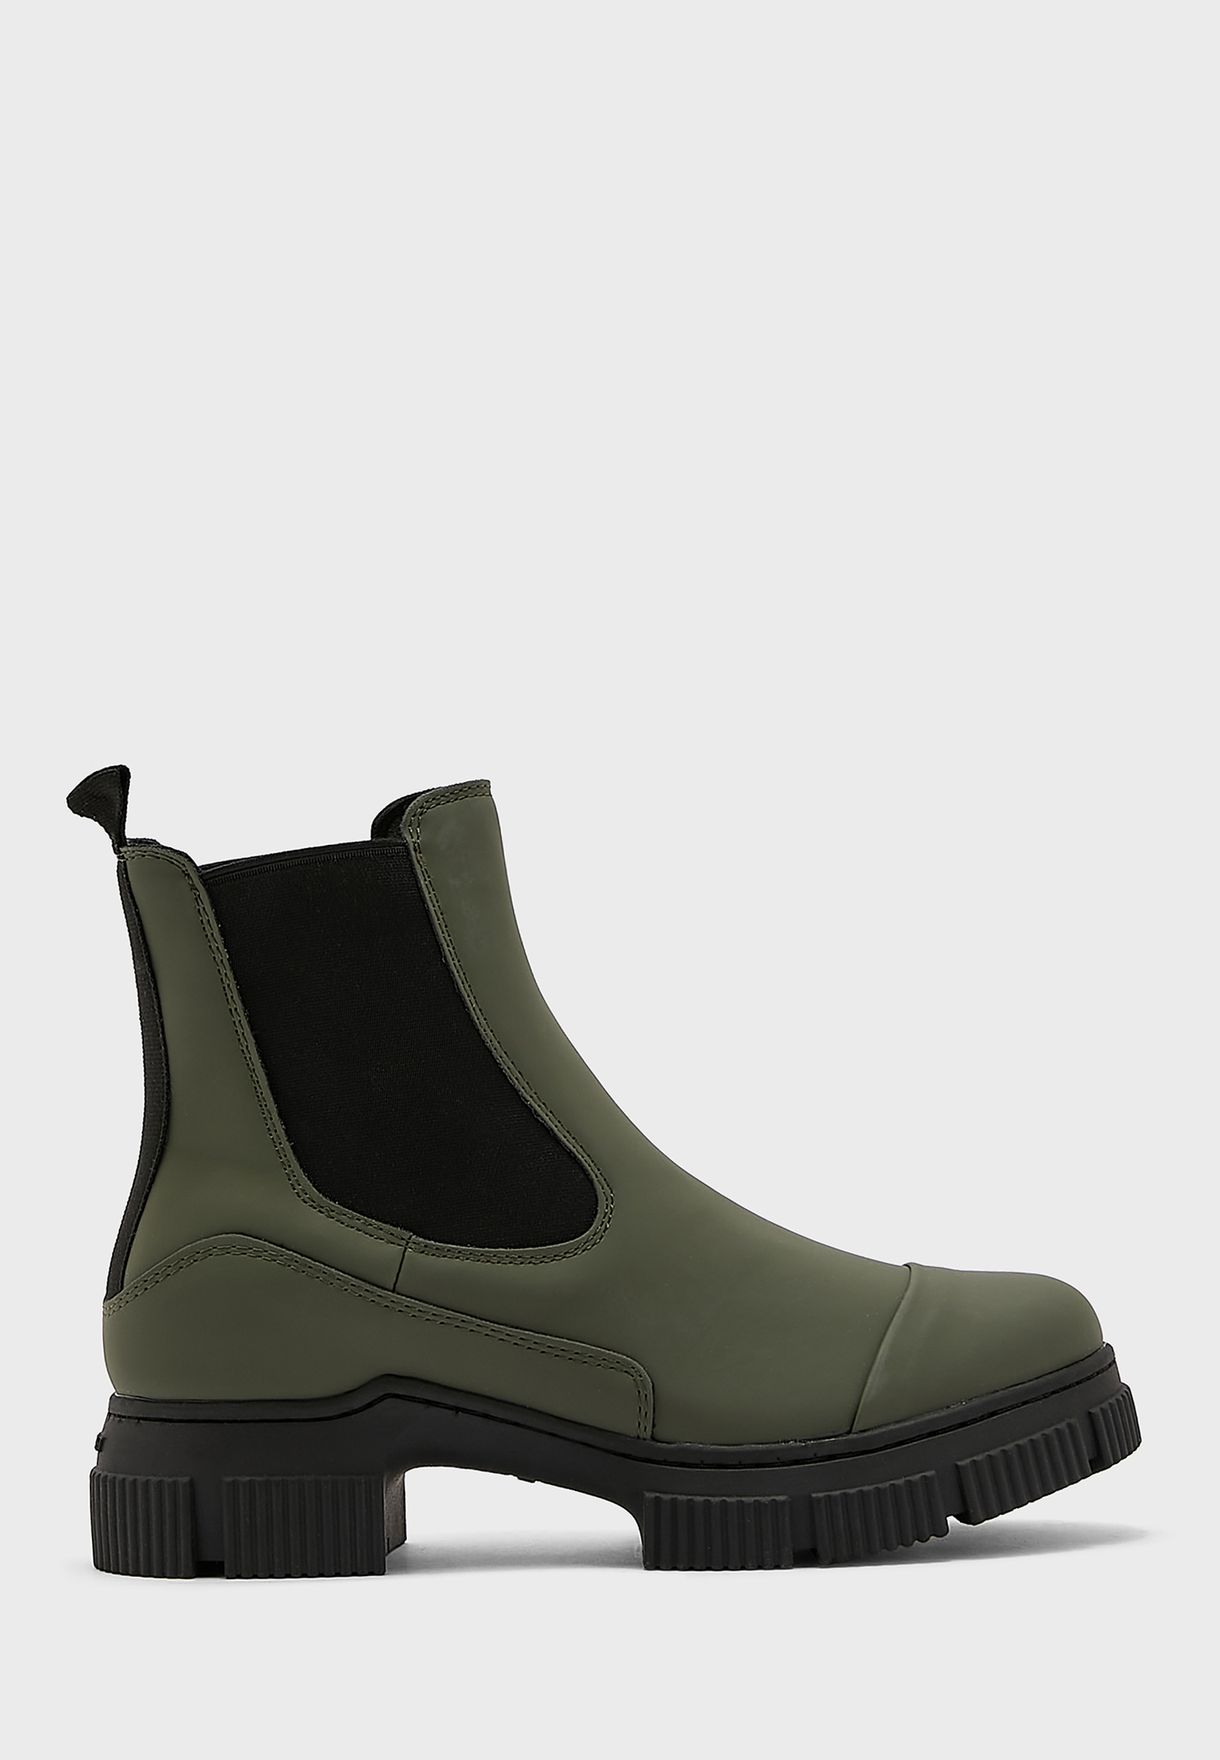 Iola3-A Low-Heel Ankle Boots